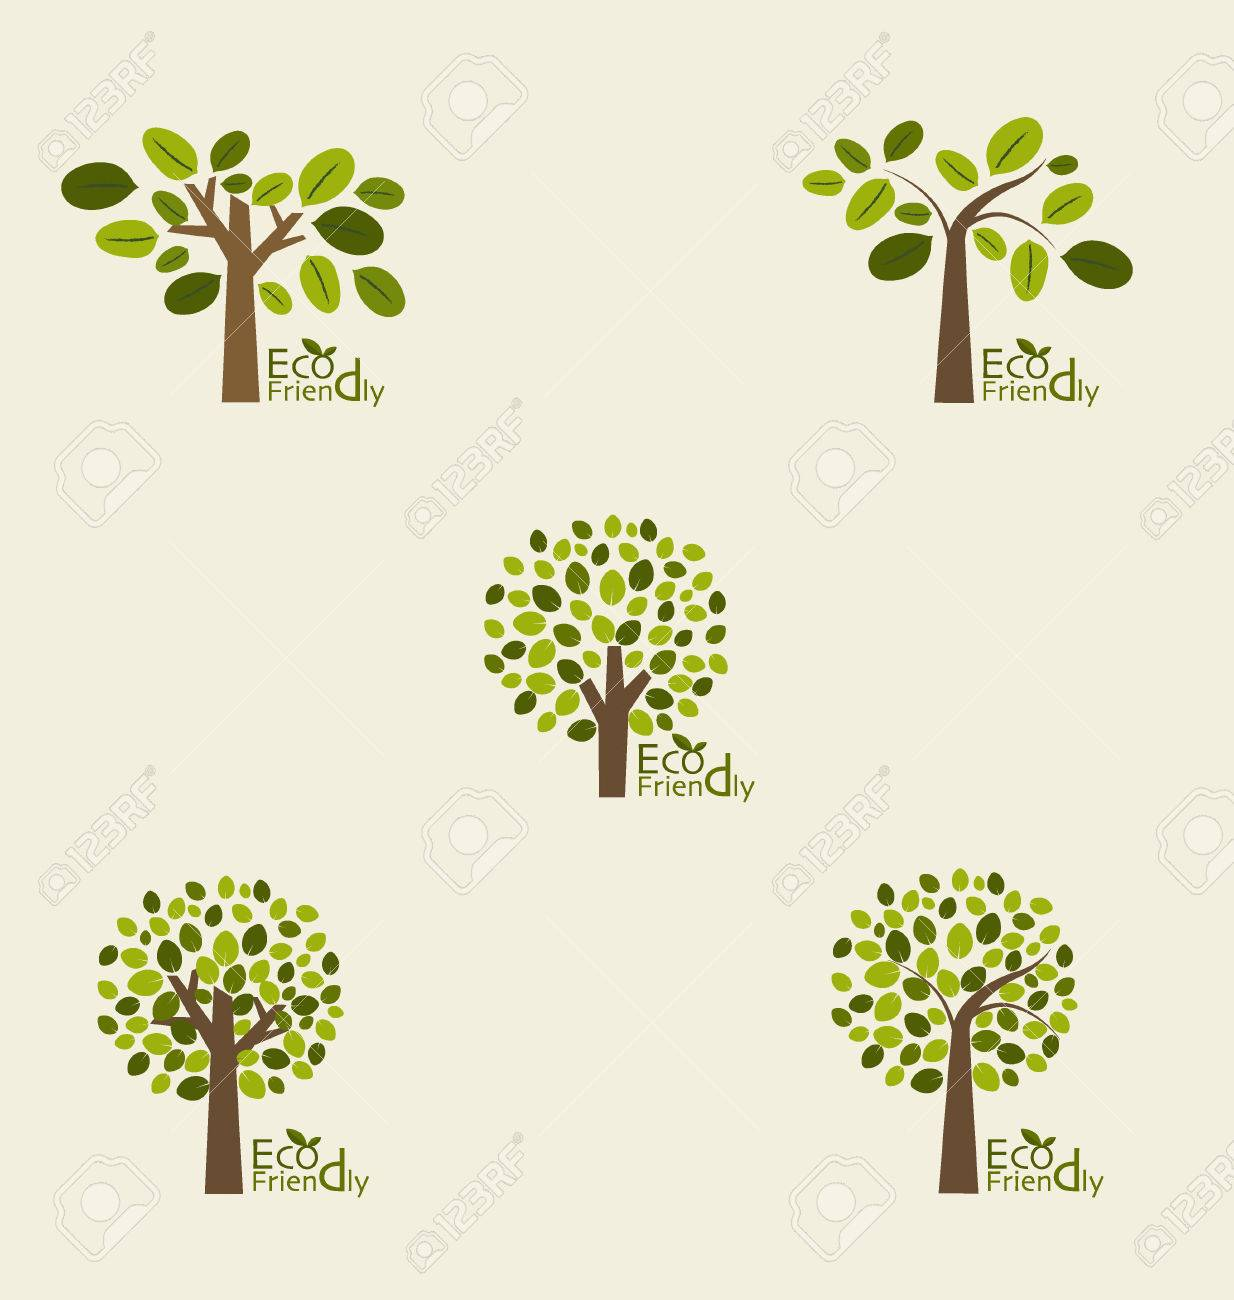 Abstract trees. Vector illustration. - 44864897